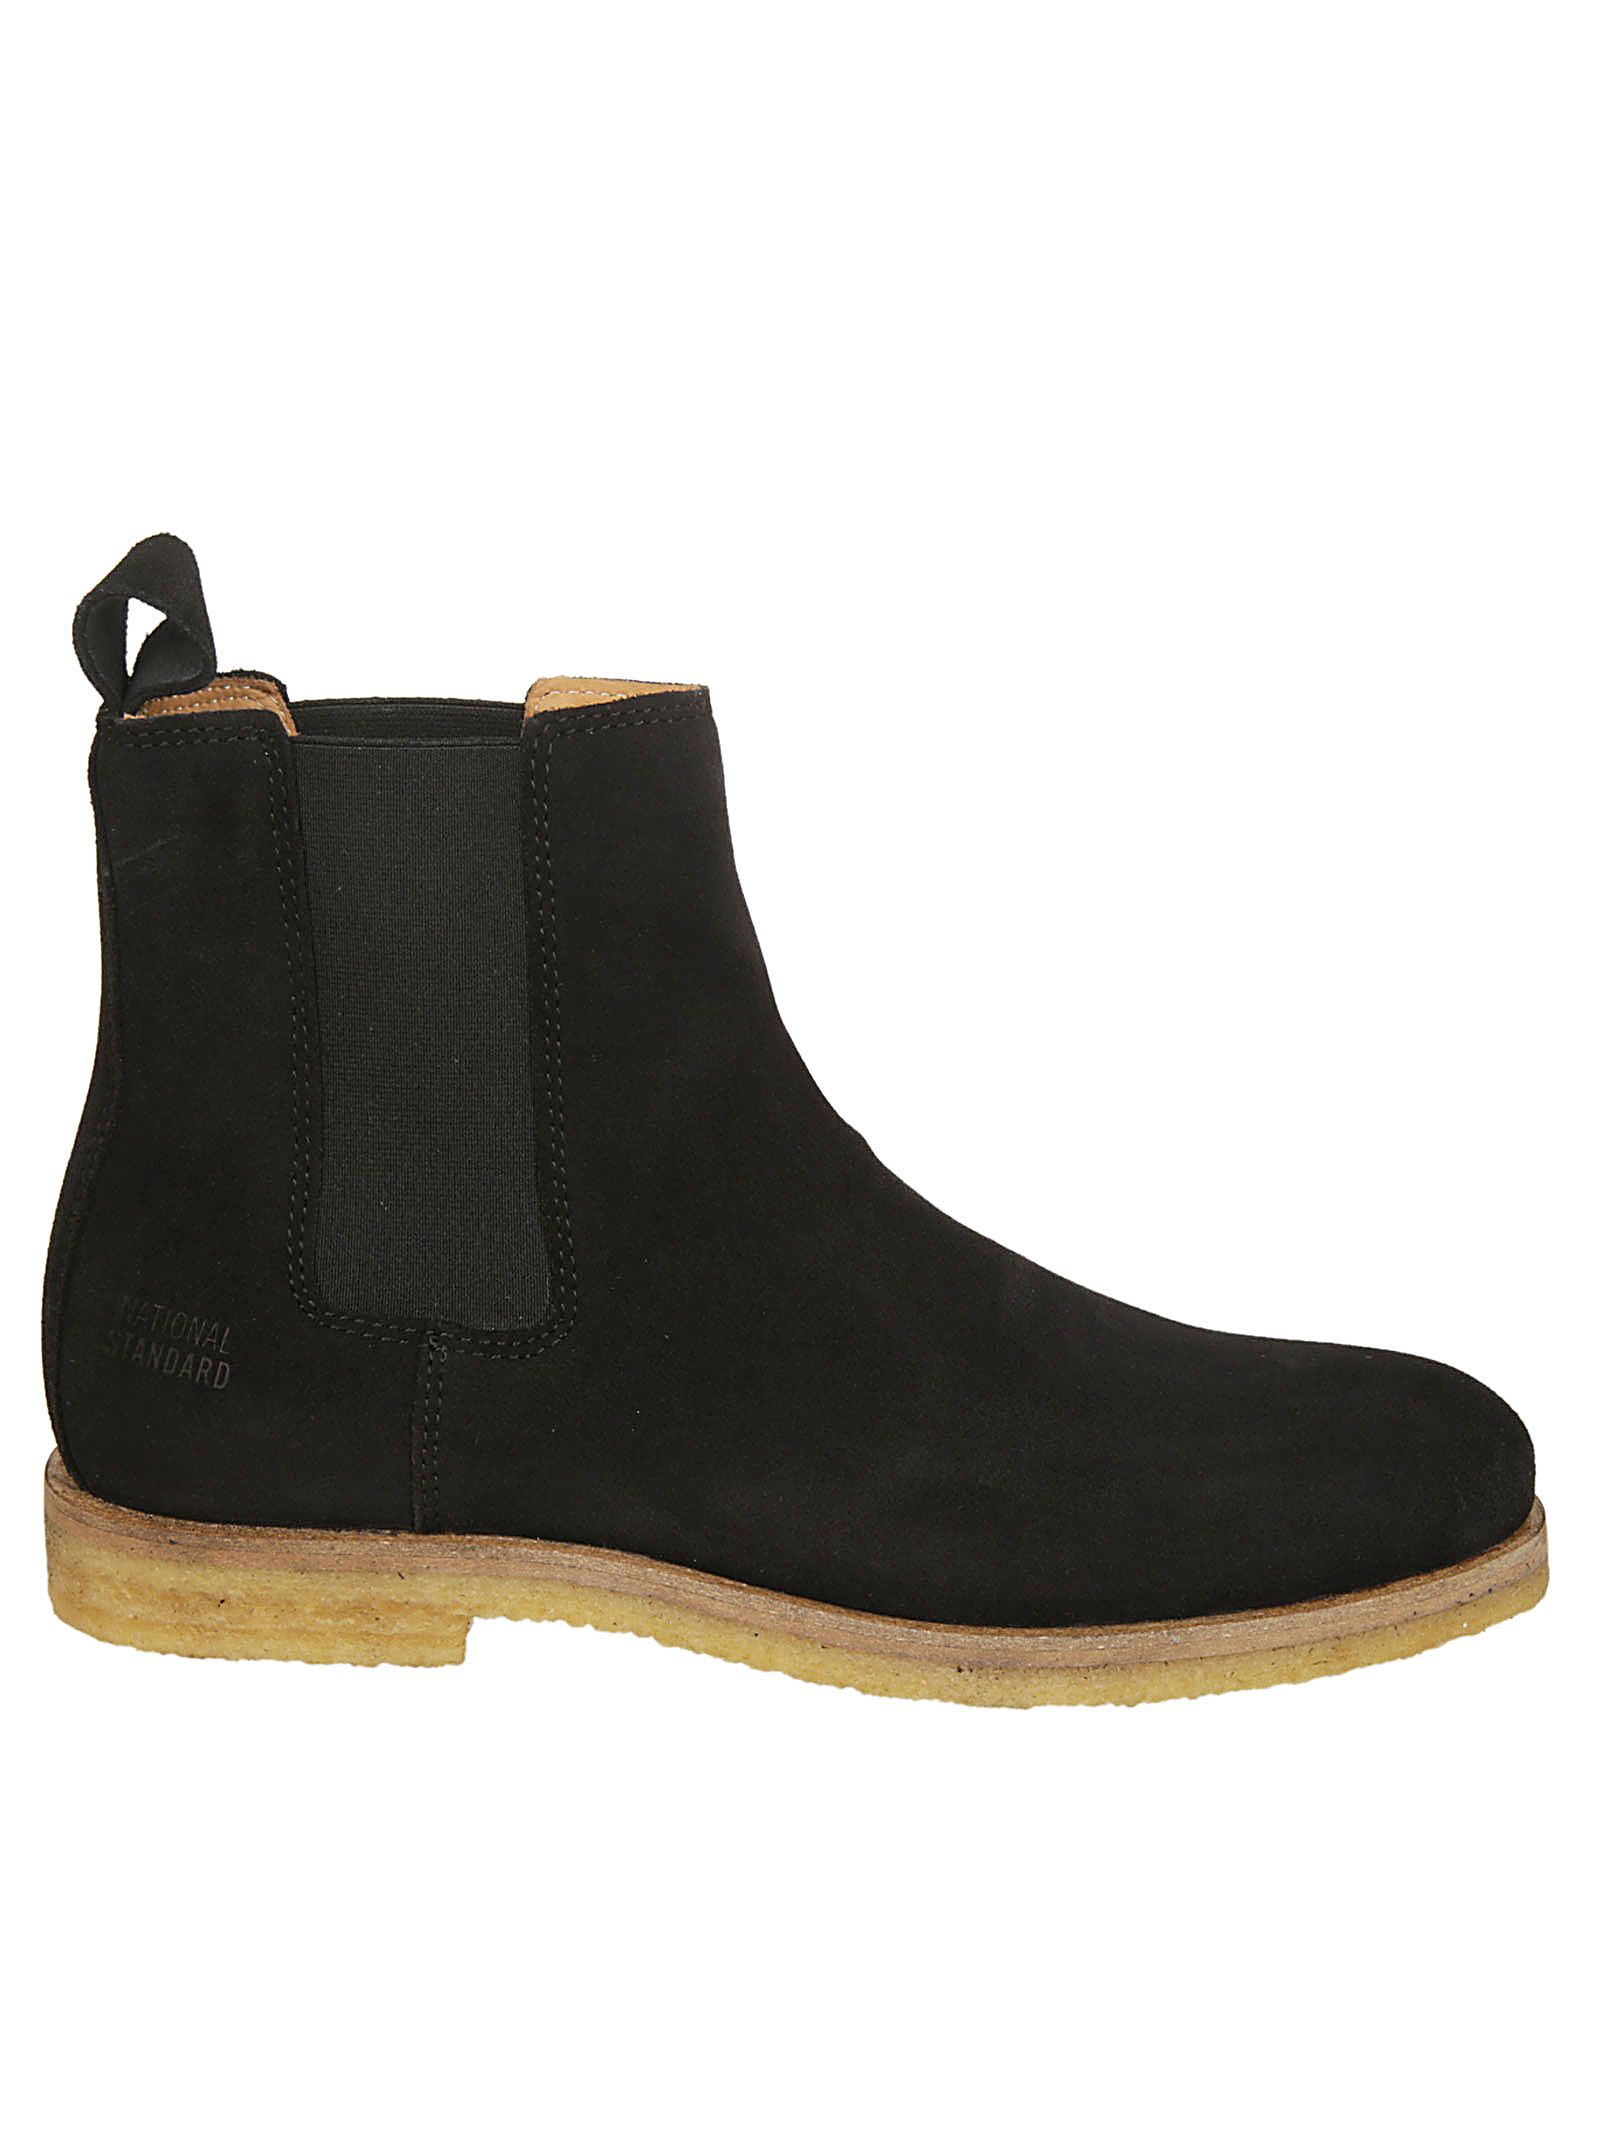 NATIONAL STANDARD Elasticated Side Ankle Boots in Nera